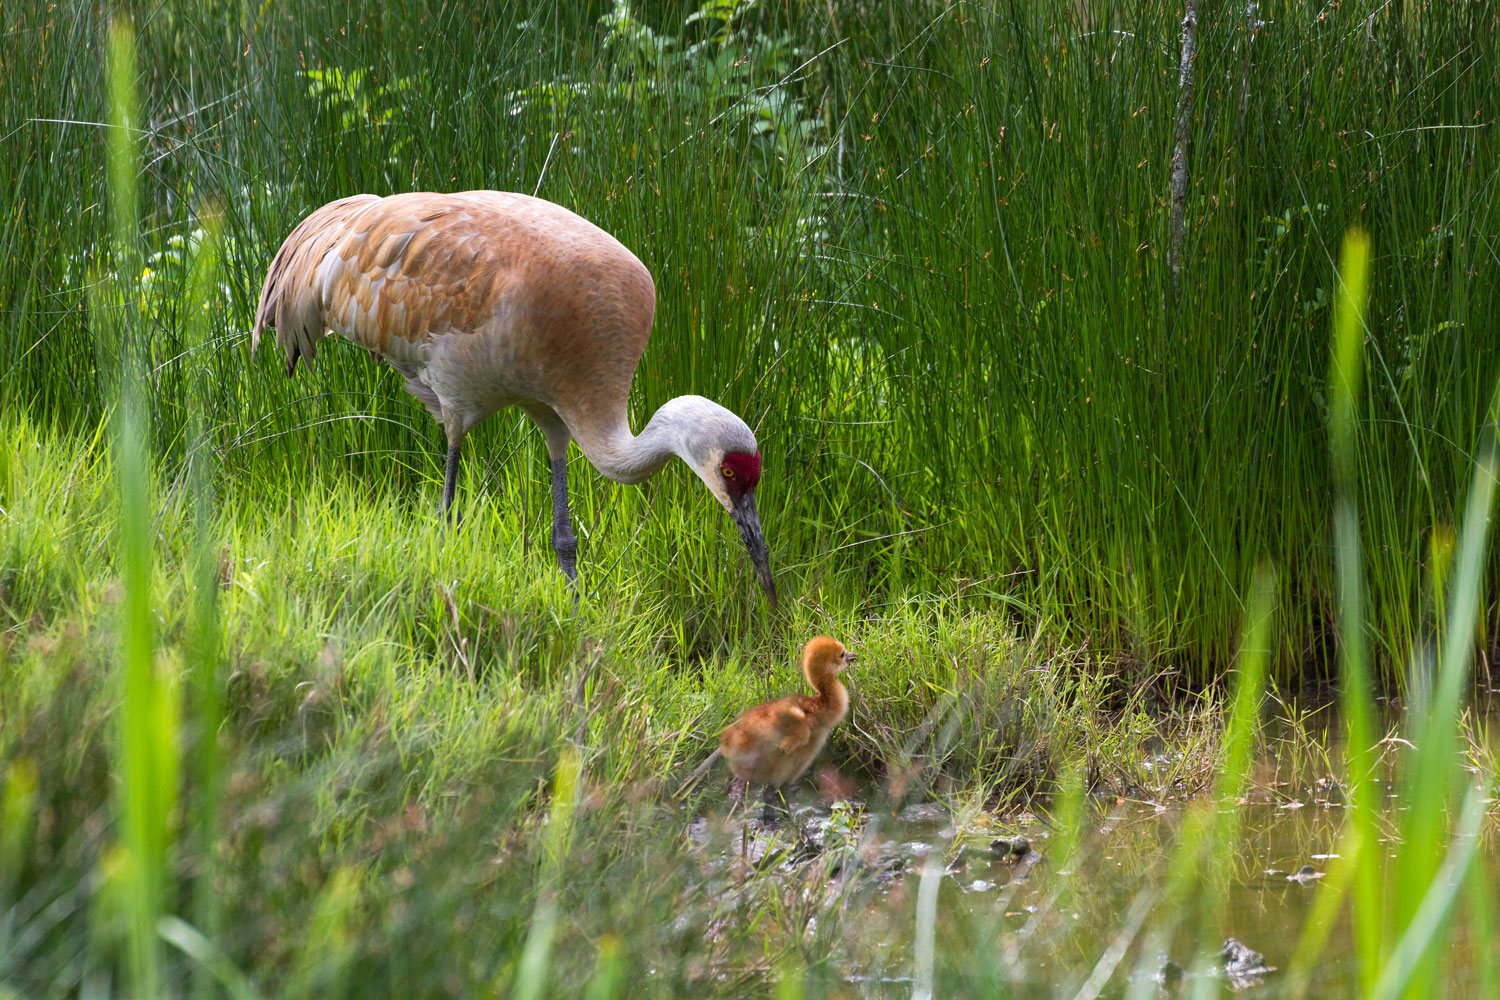 LAND-JOURNAL-Blog-Awareness-How-to-Deal-With-Sandhill-Cranes-on-Your-Property-[VIDEO]-2019